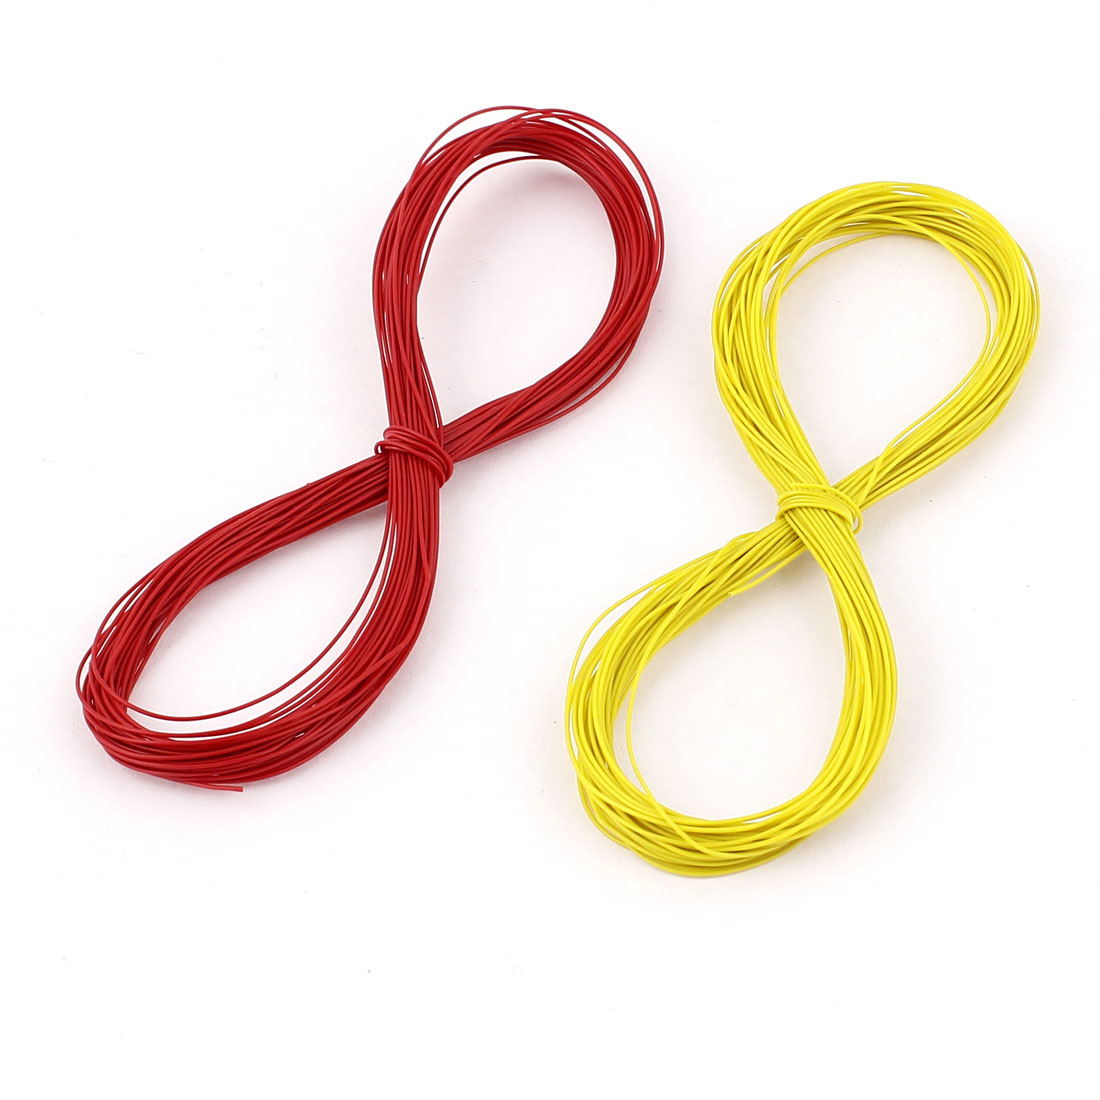 P/N B-30-1000 10M Insulation Test Wrapping Wire Cable 2pcs Yellow Red